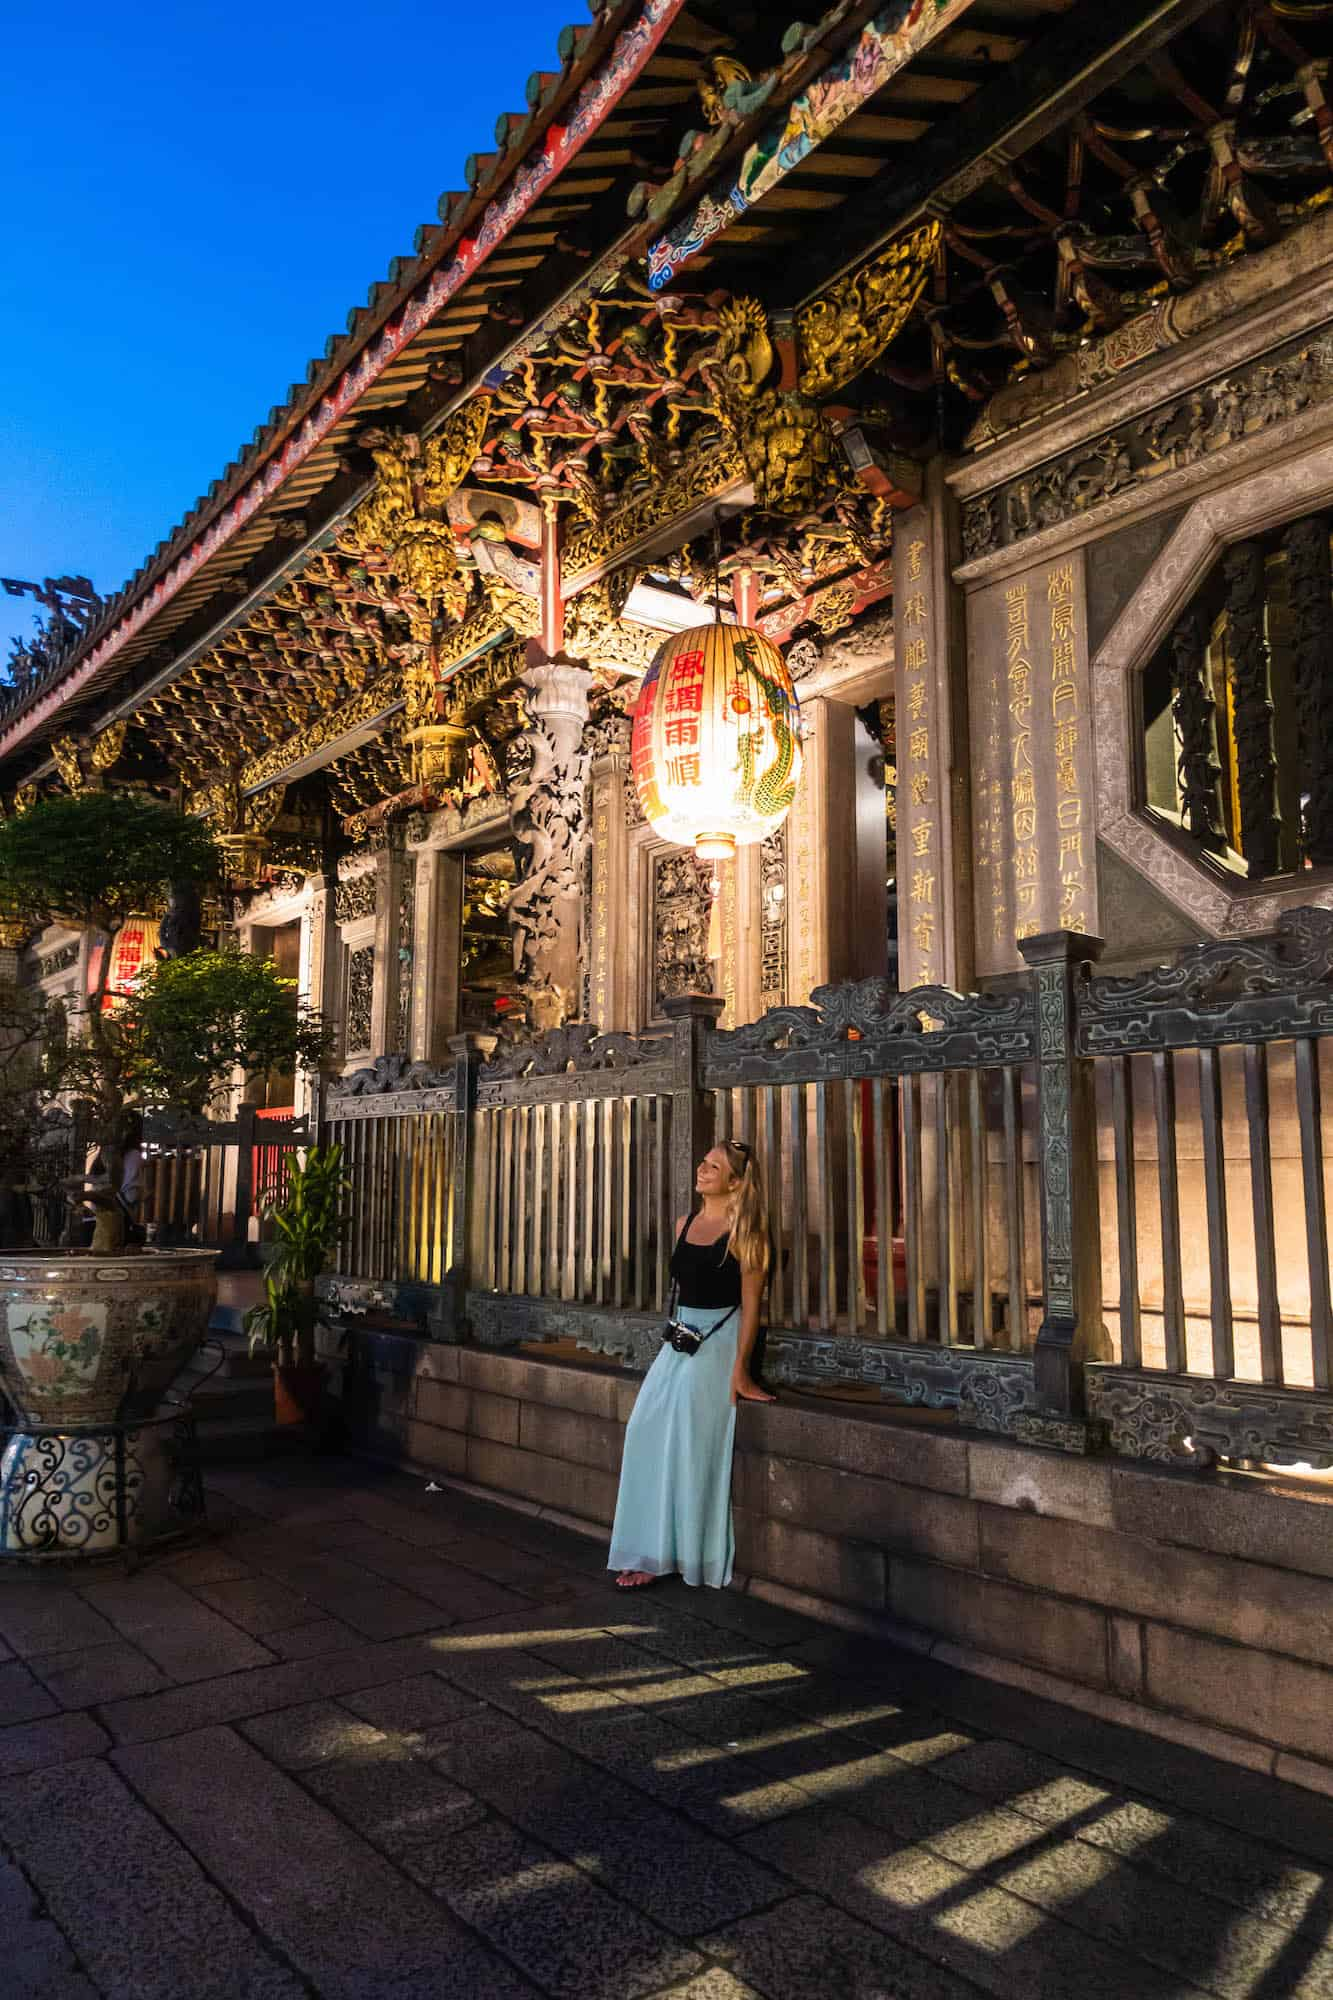 Travel Taiwan - Temples